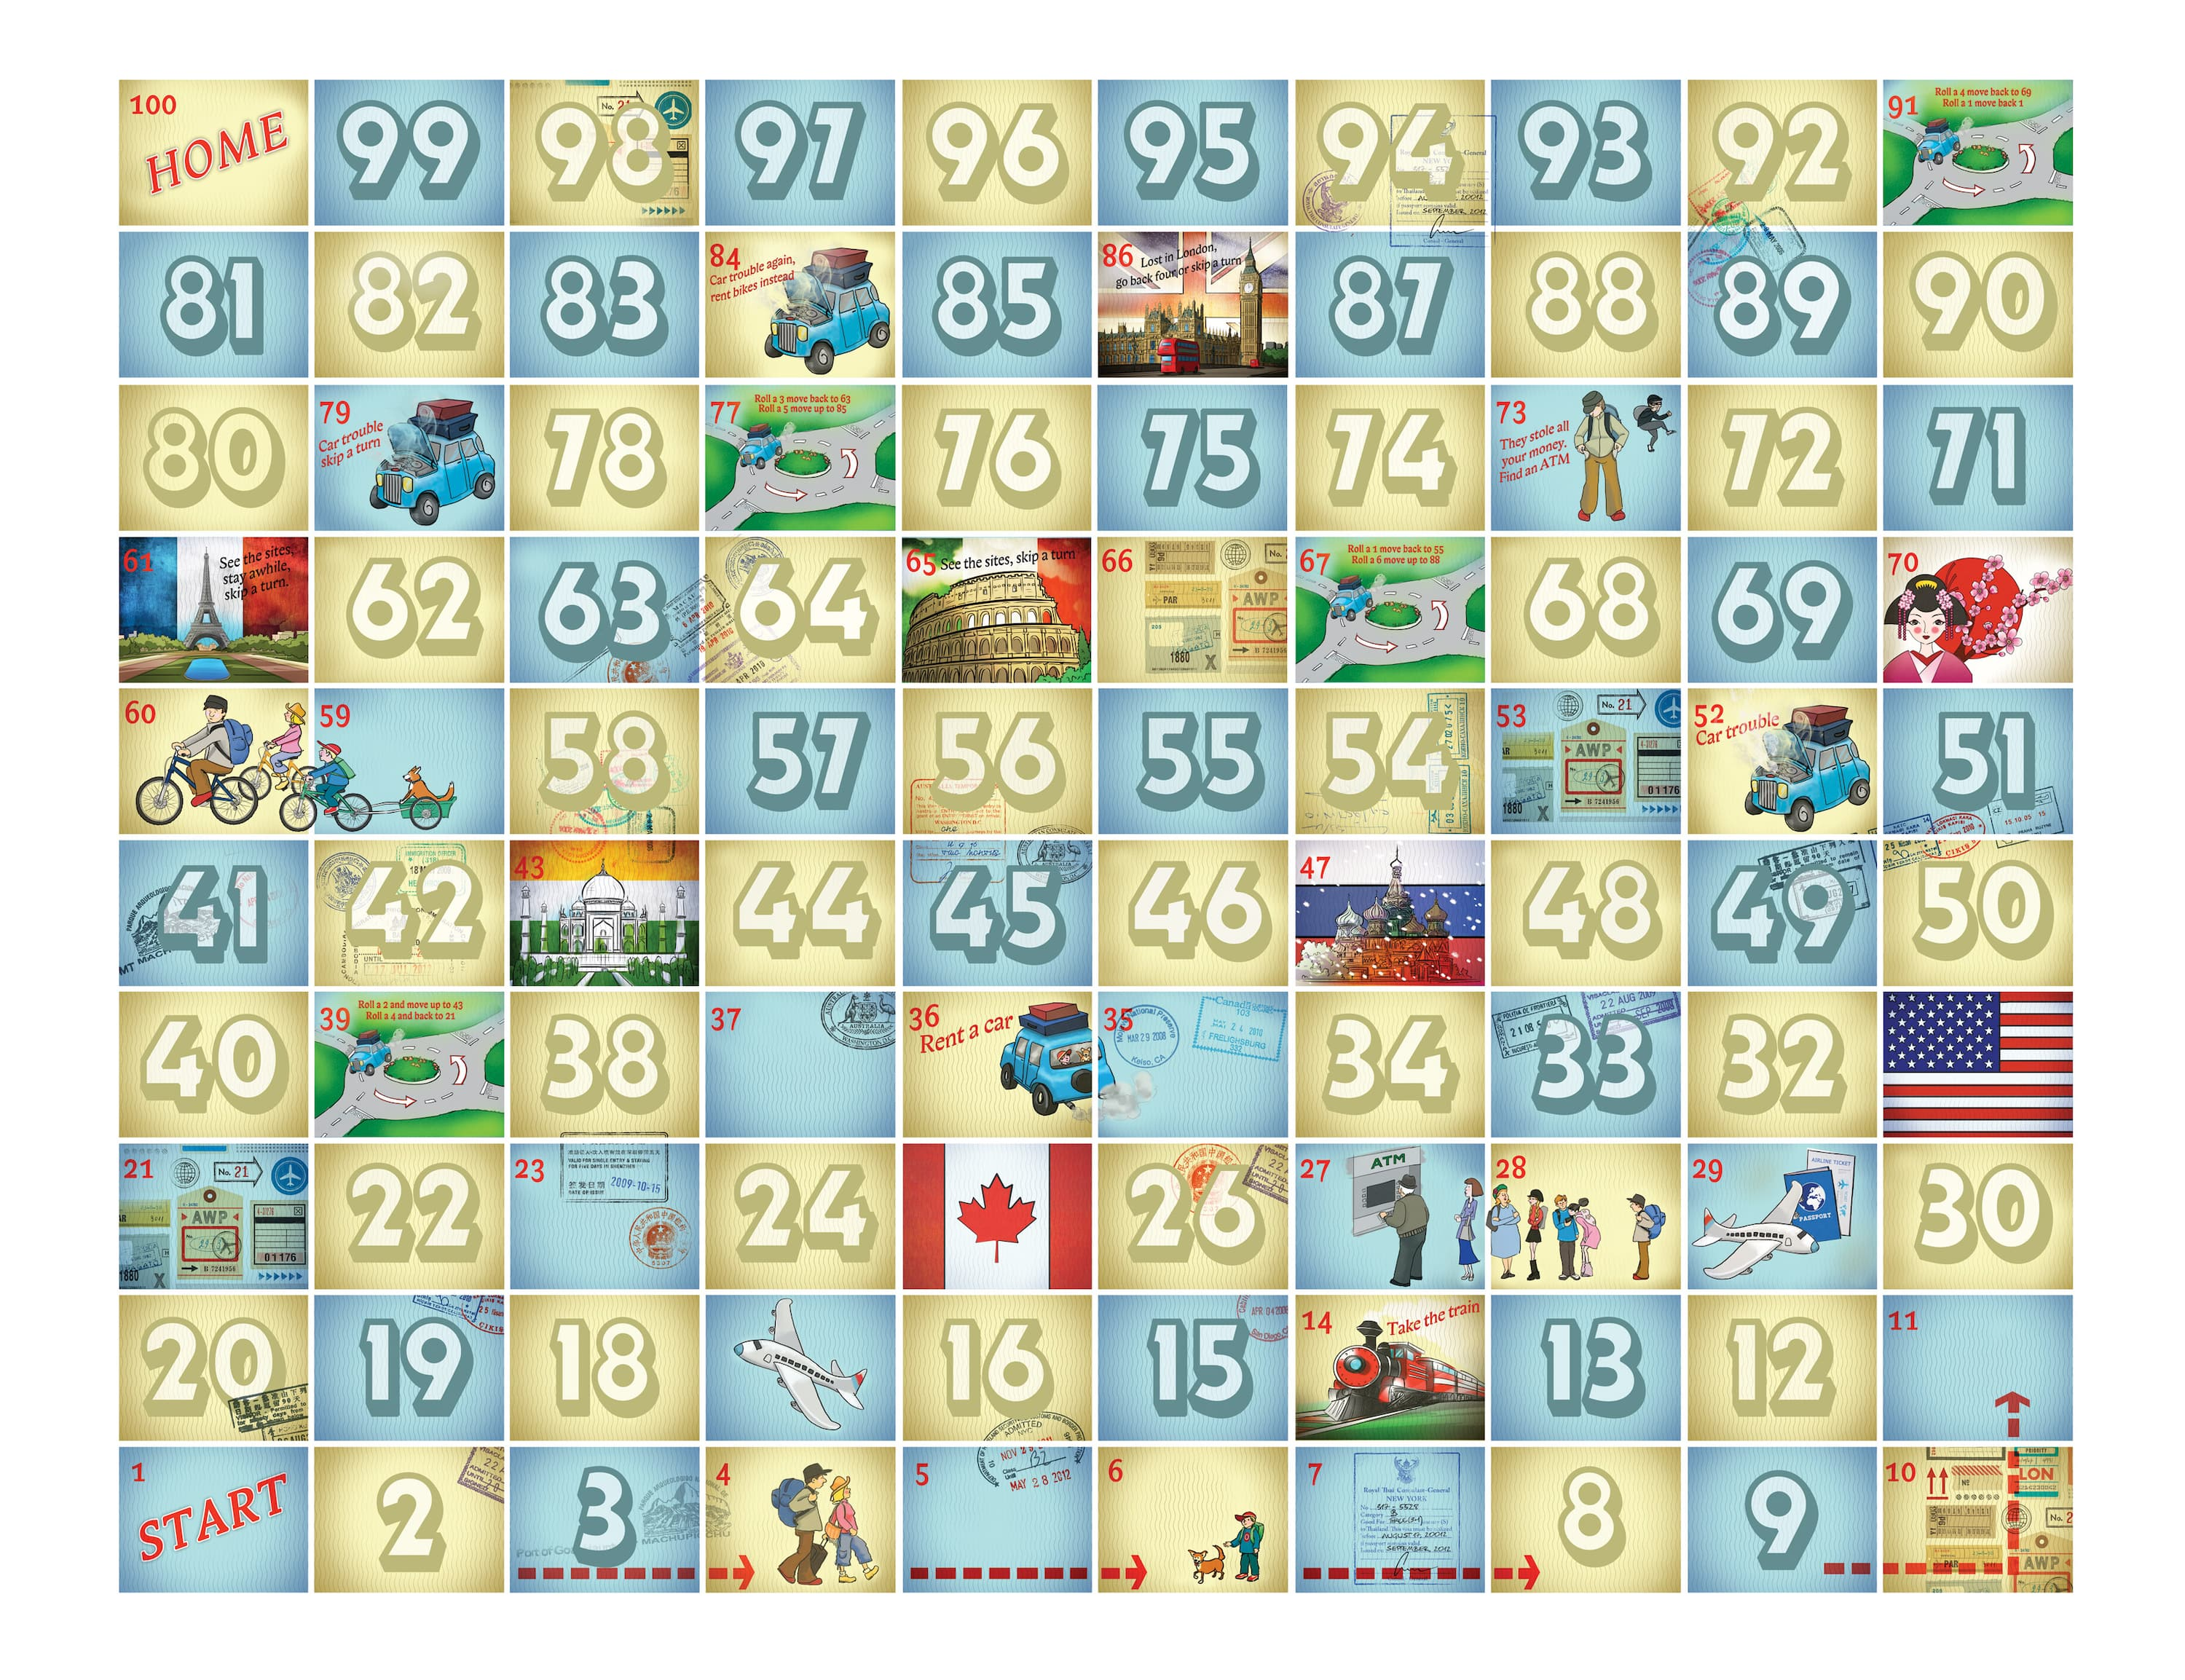 Diy snakes and ladders steven and chris for Board game instructions template